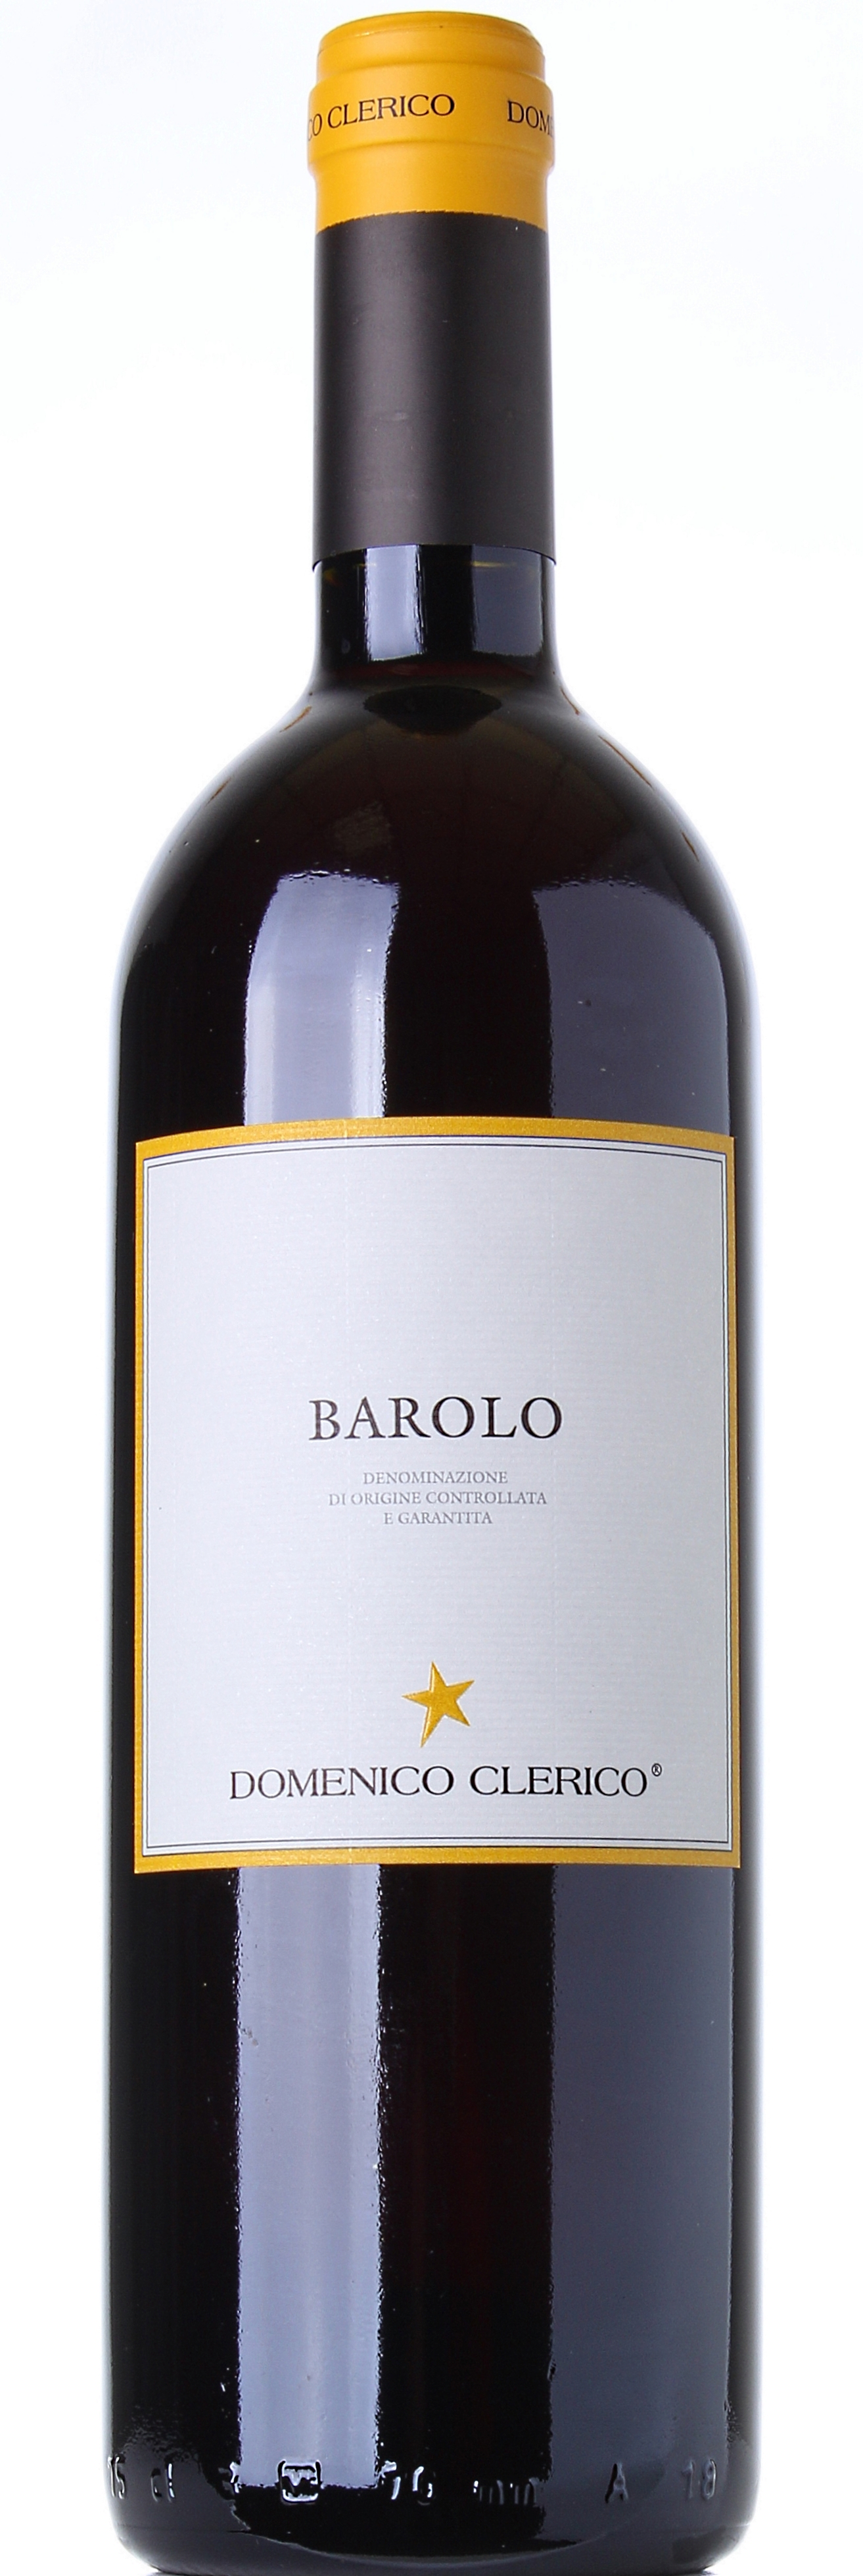 DOMENICO CLERICO BAROLO 2012